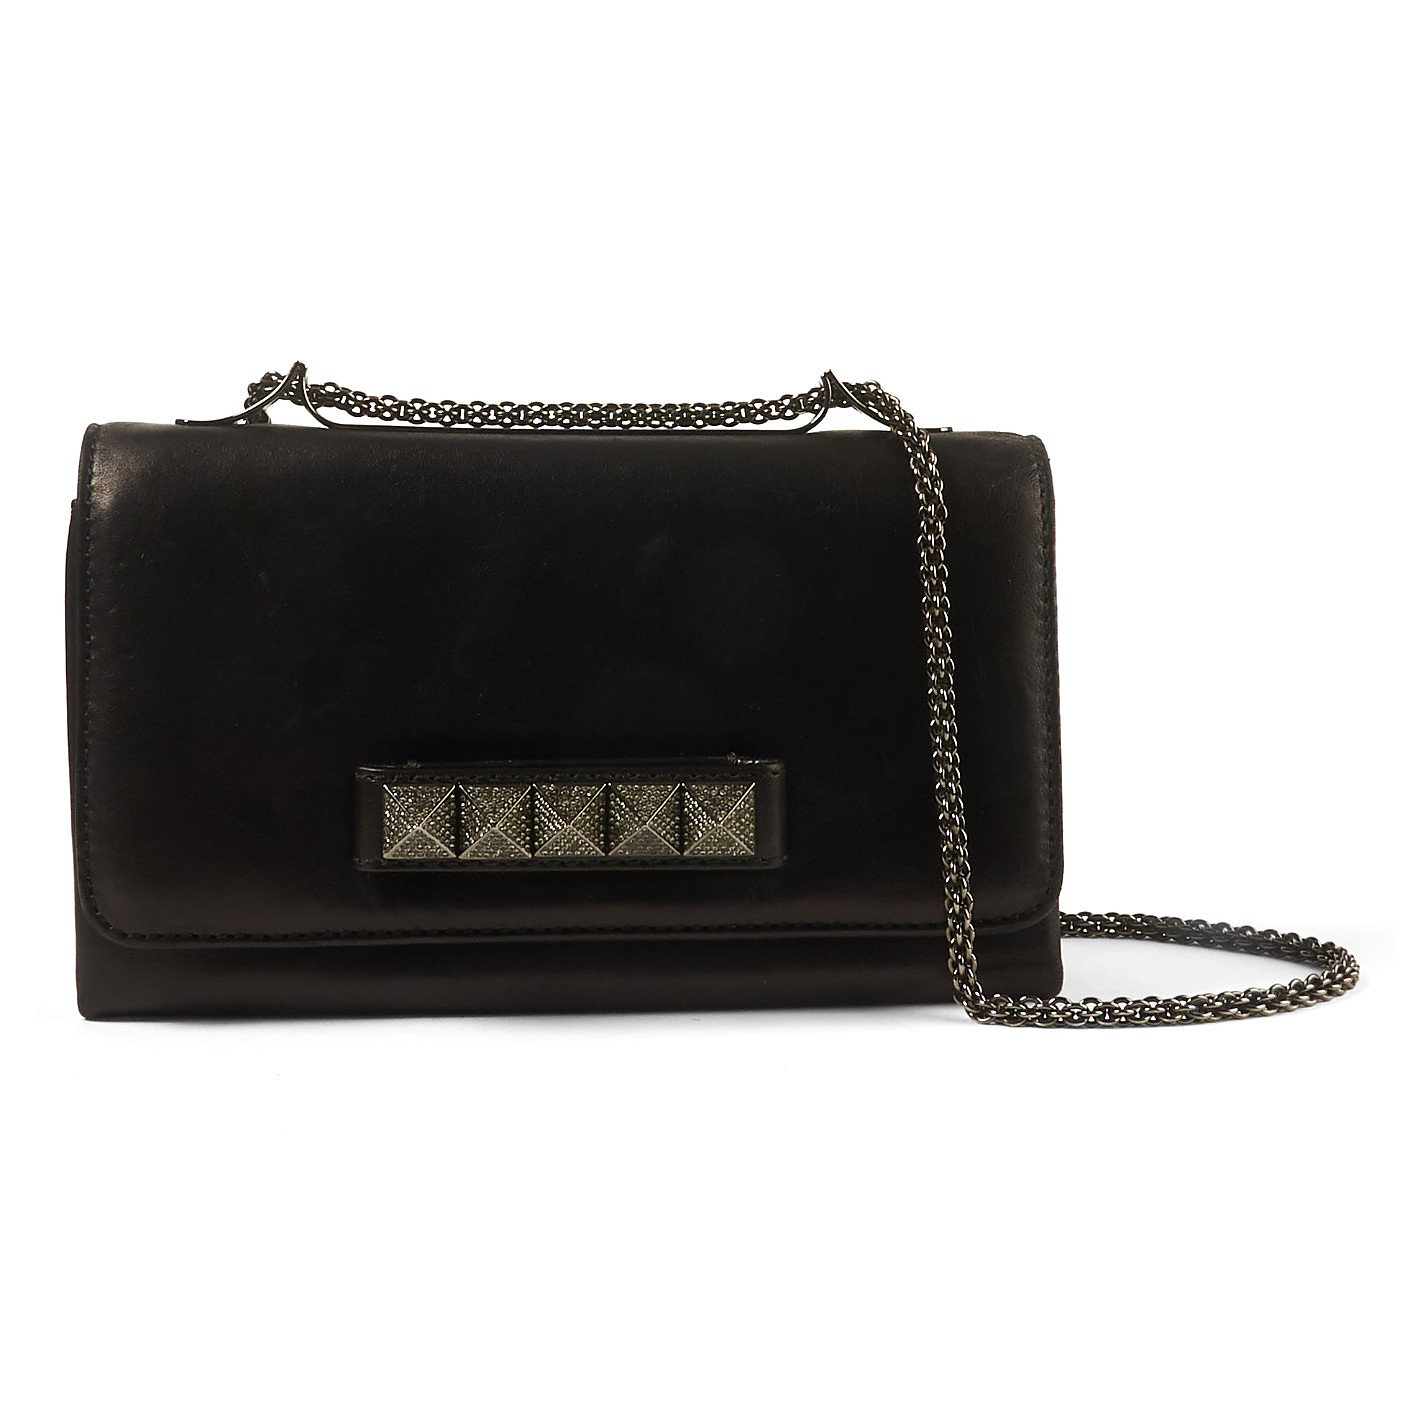 Valentino Leather Bag with Detachable Straps